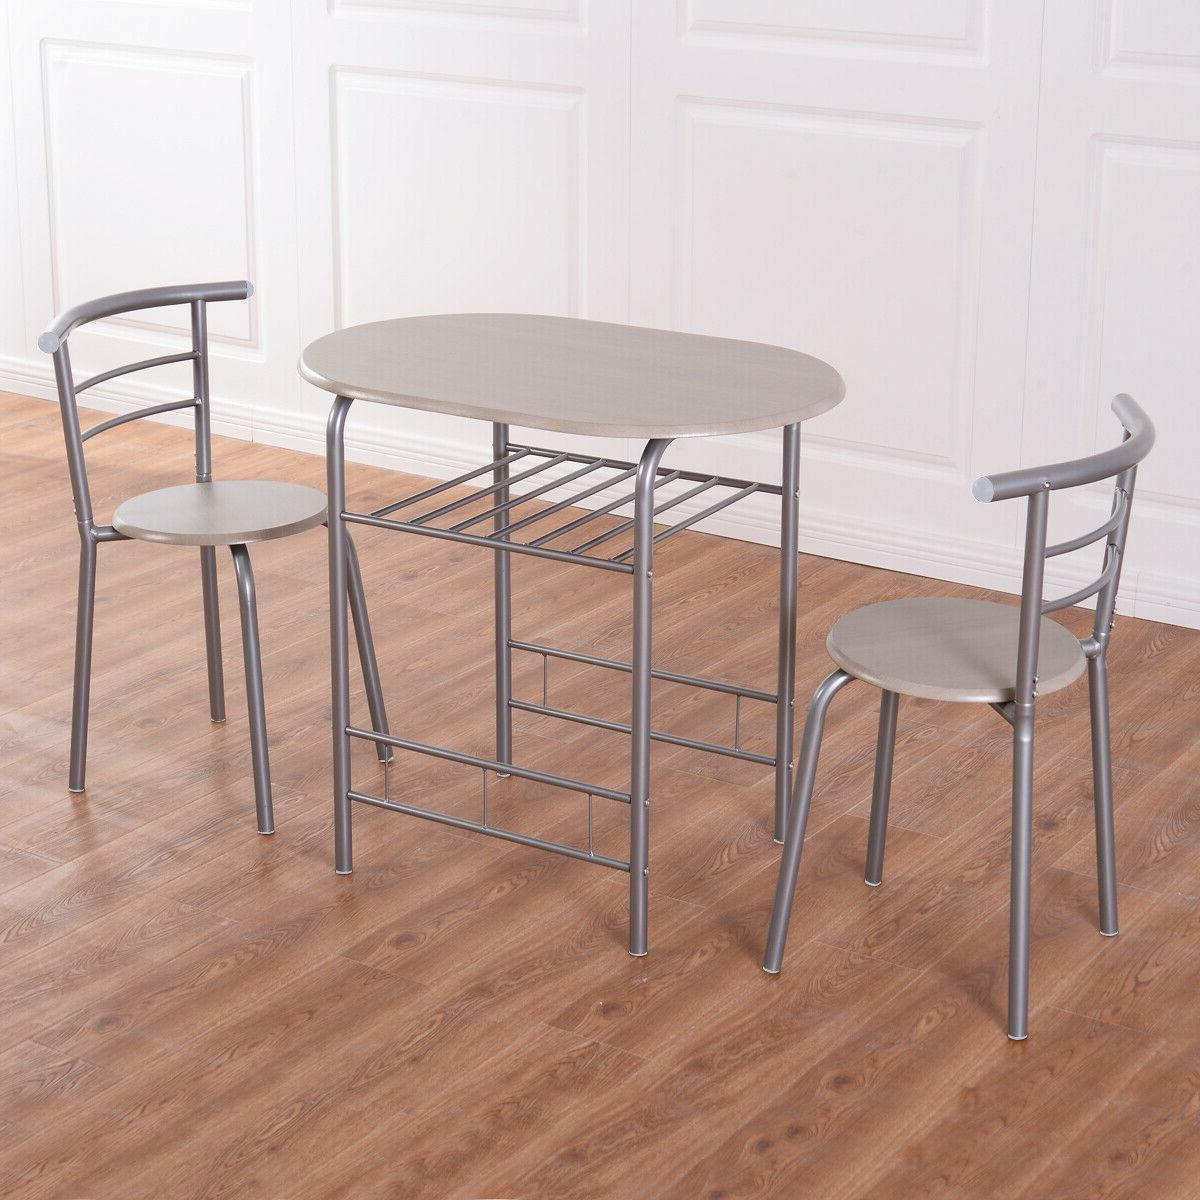 3 Dining Table 2 Bistro Home Kitchen Breakfast Furniture